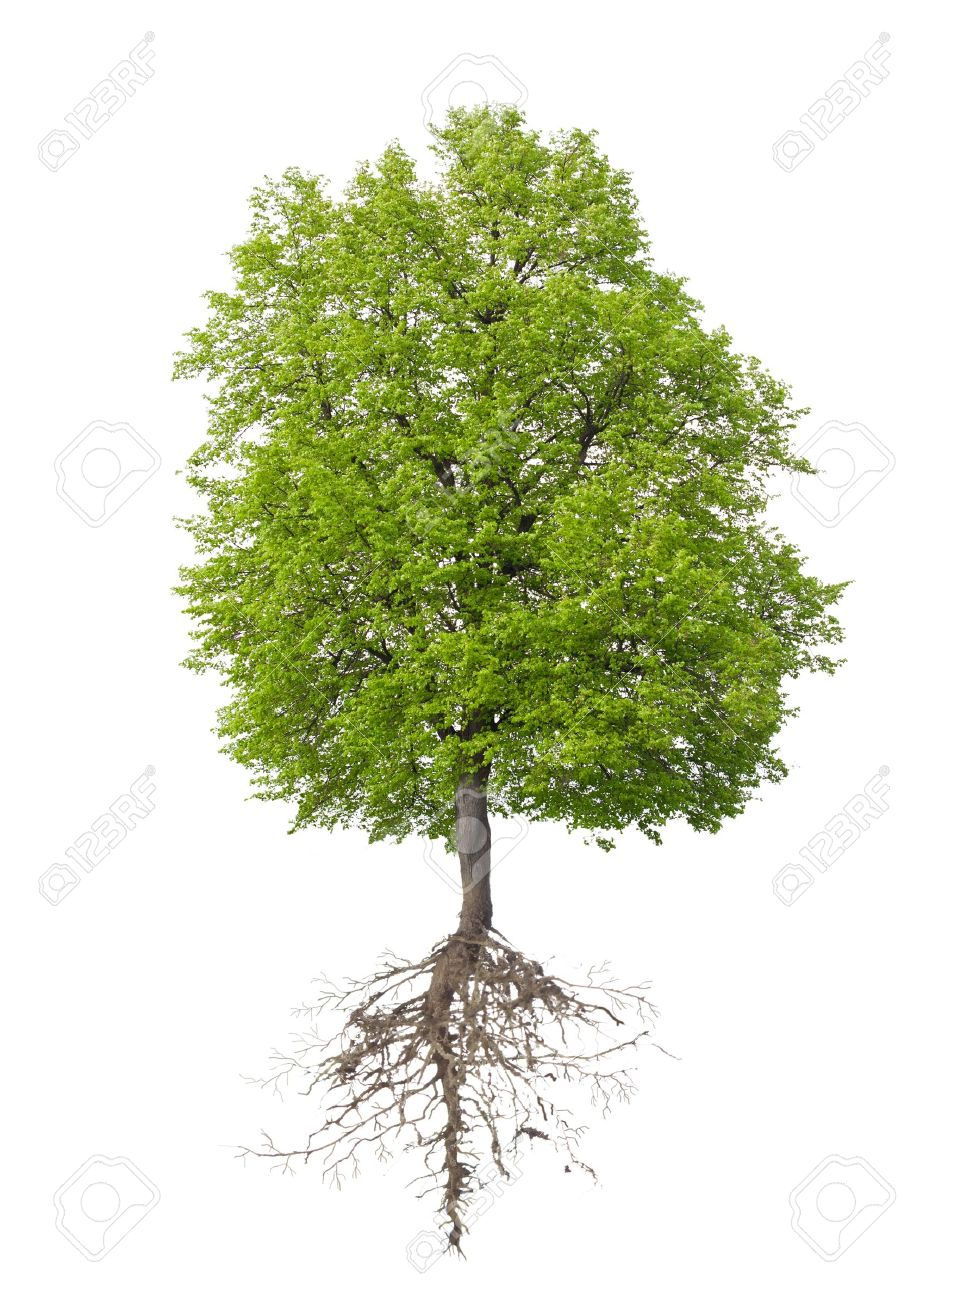 Bild Baum Stock Photo